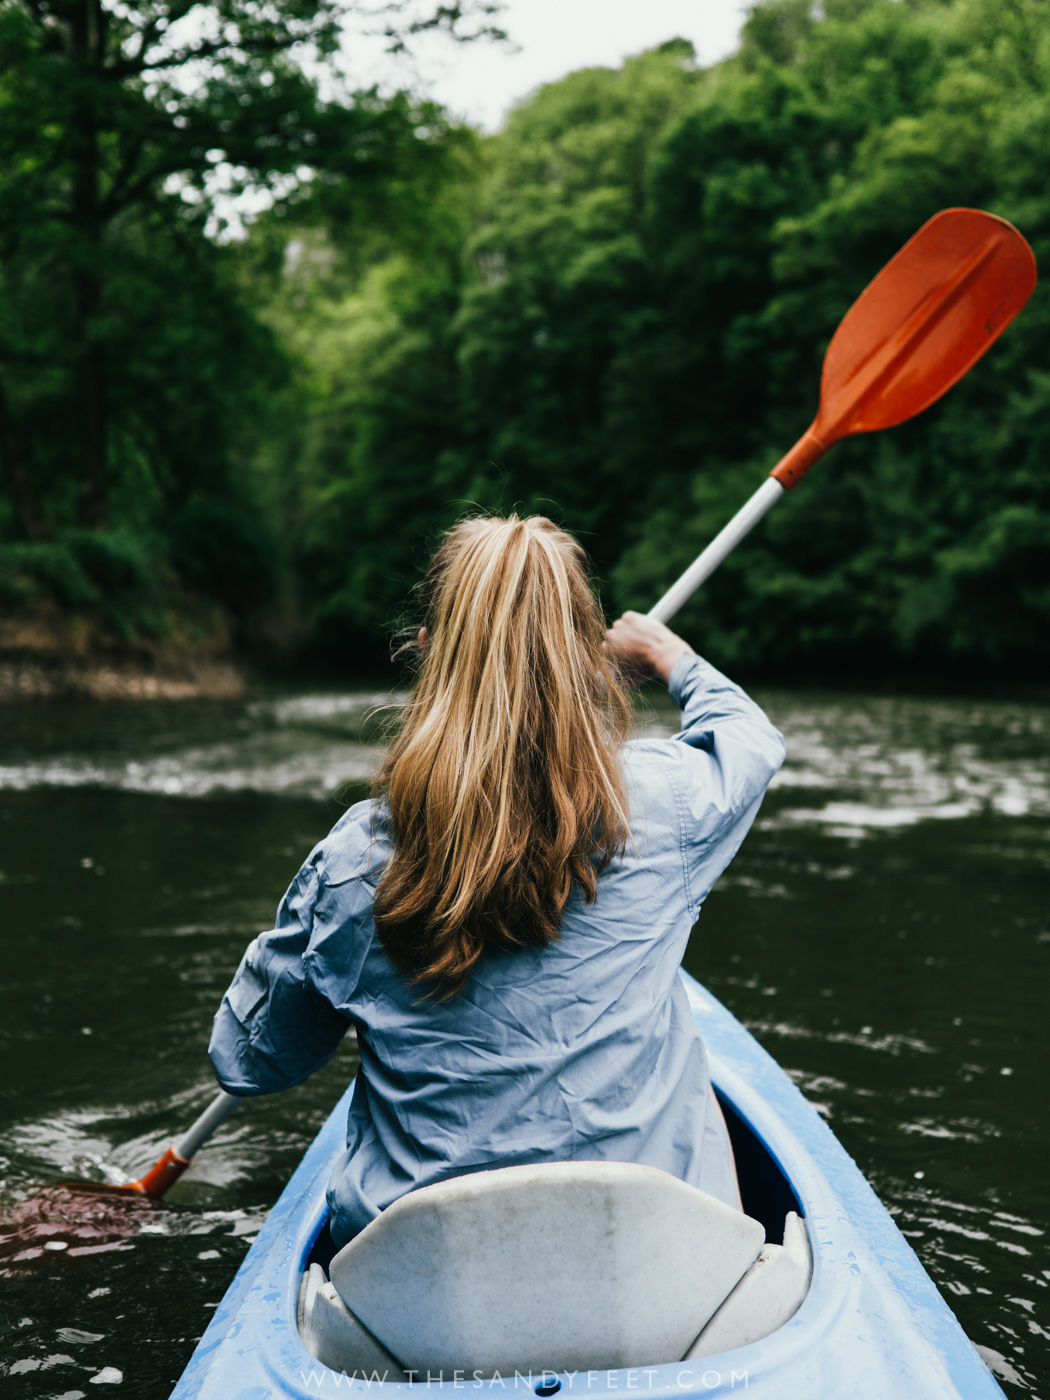 Kayaking the Lesse Valley | Top Things To Do In Belgium's Wallonia Region